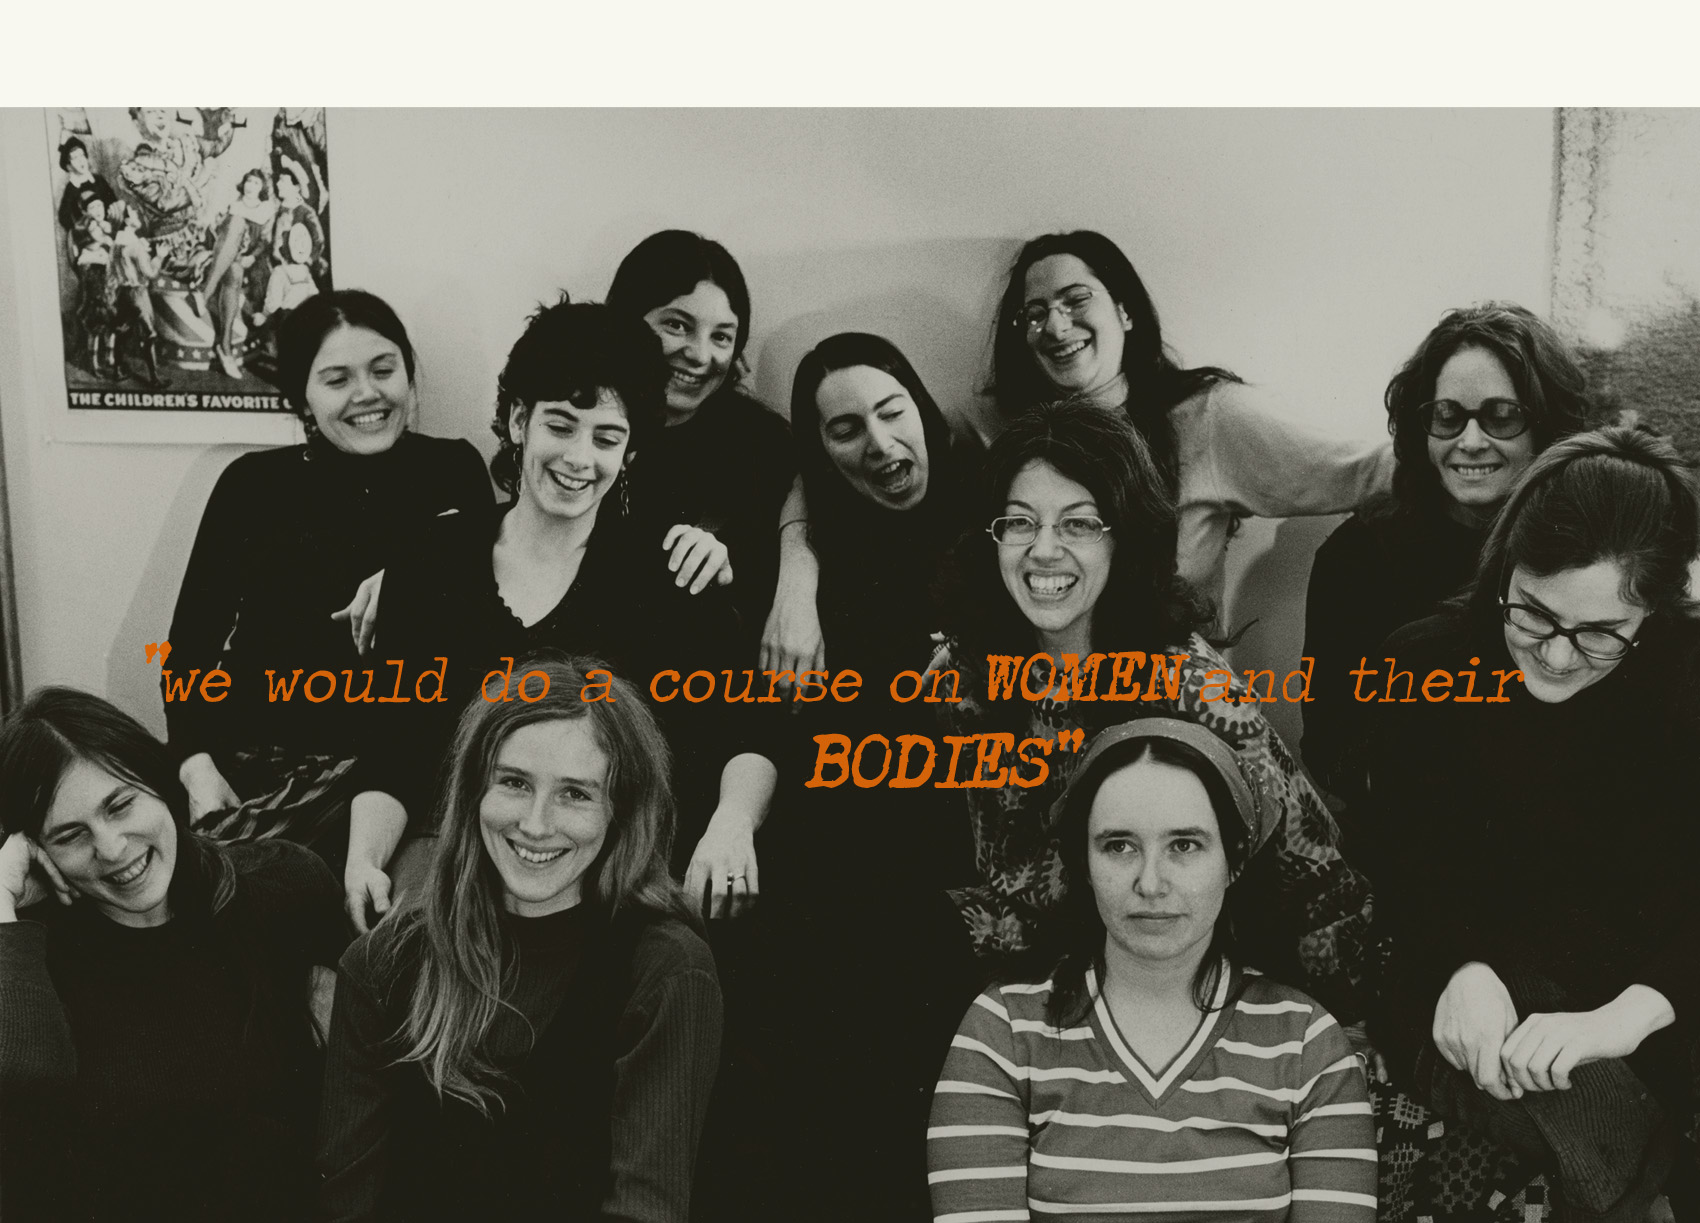 4. course on women and their bodies v2.jpg